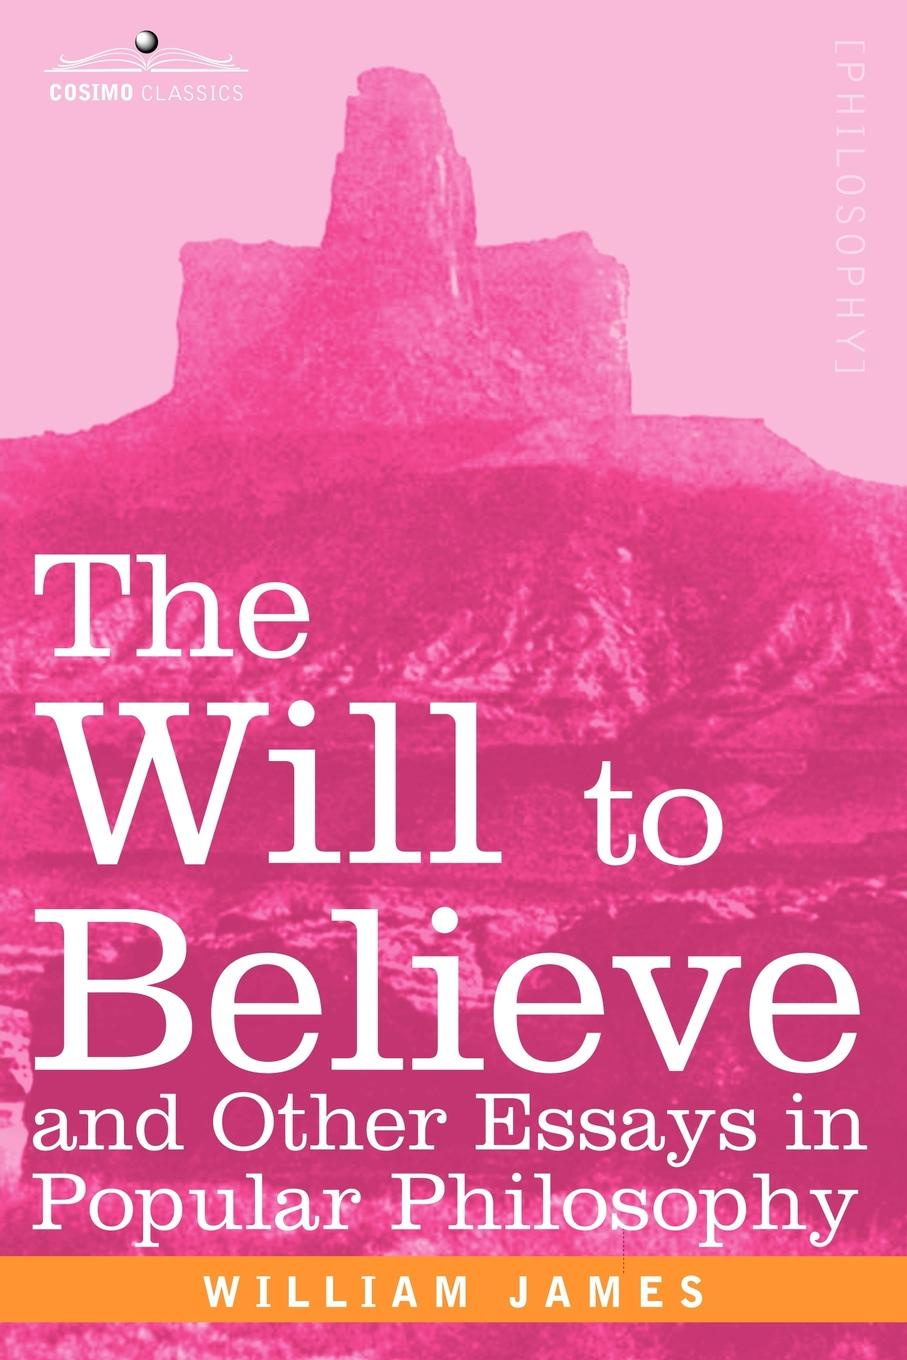 William James The Will to Believe and Other Essays in Popular Philosophy william james the will to believe and other essays in popular philosophy and human immortality